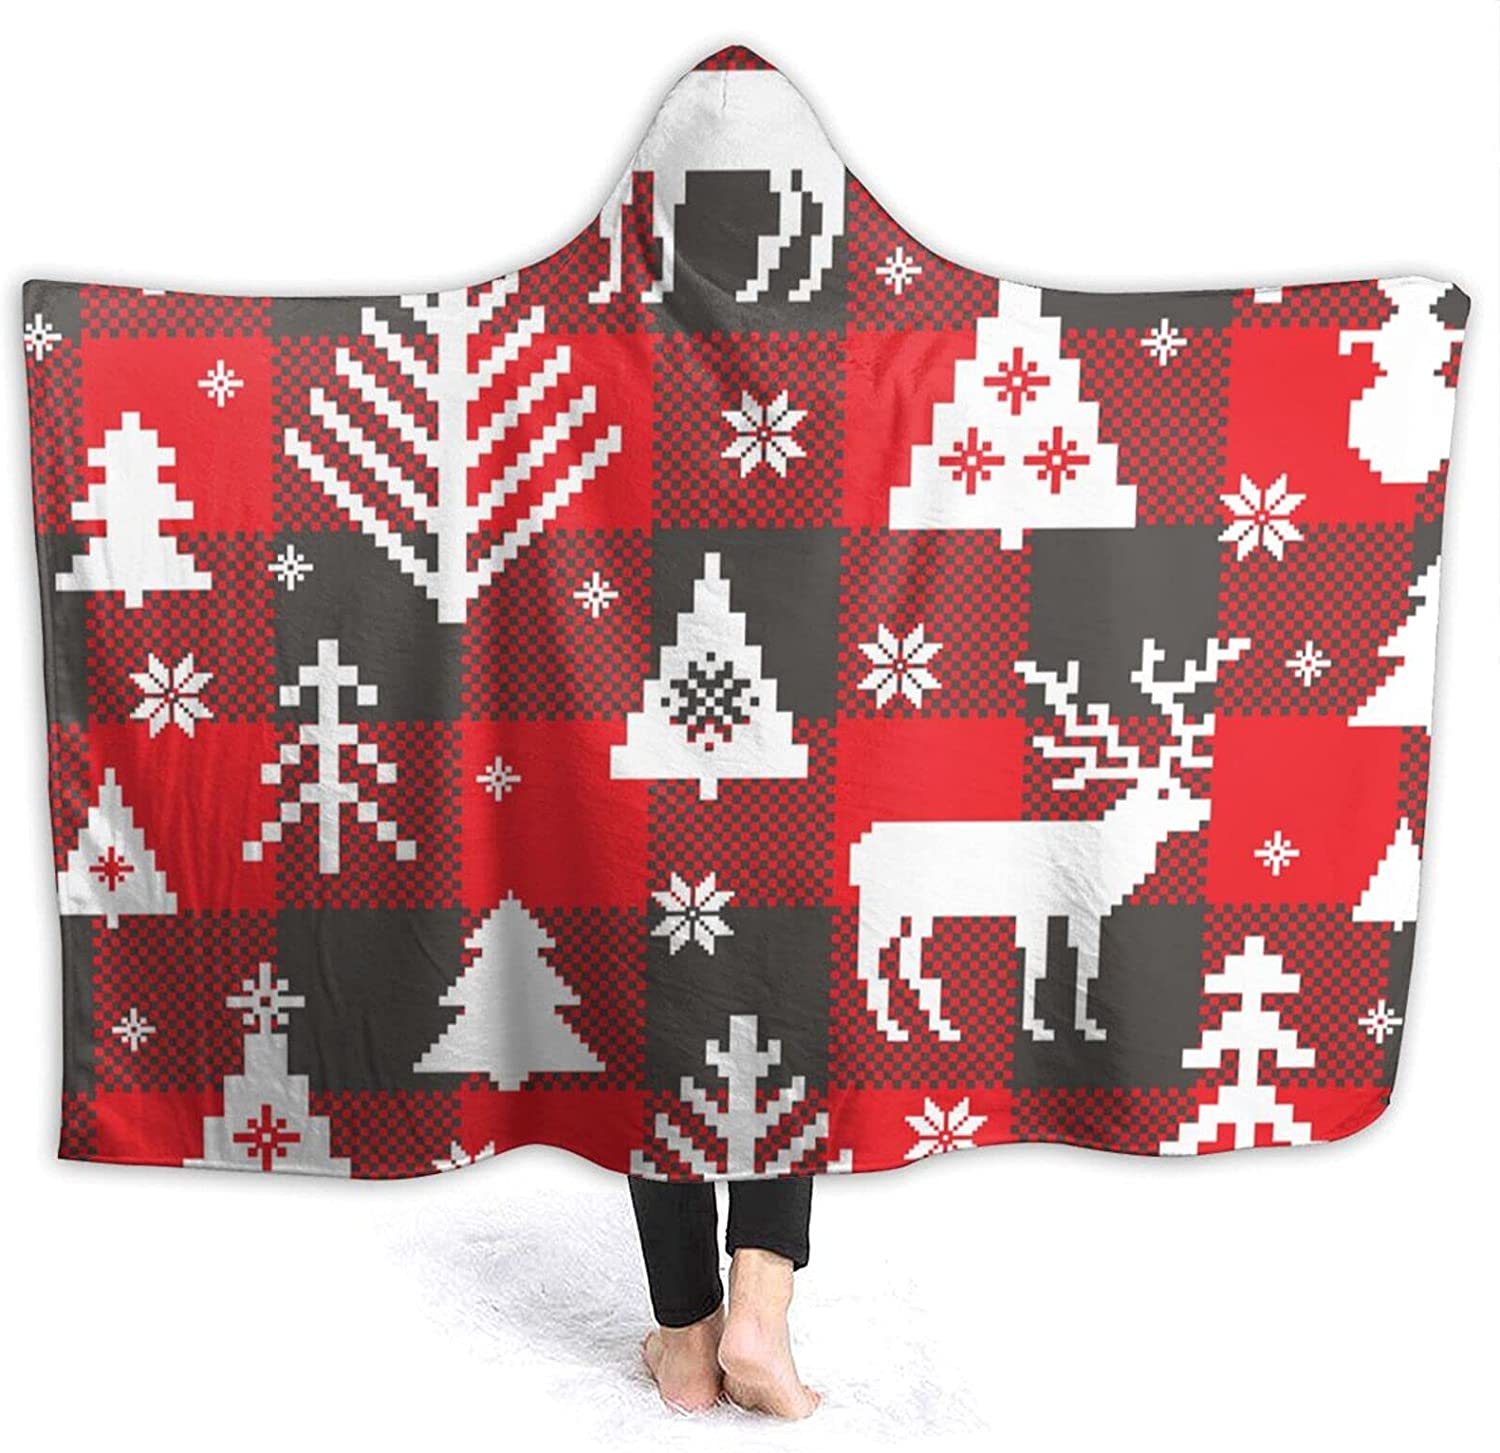 Hooded Blanket Reindeer and Christmas B Suitable for Tree Lowest price challenge Sofas Regular store